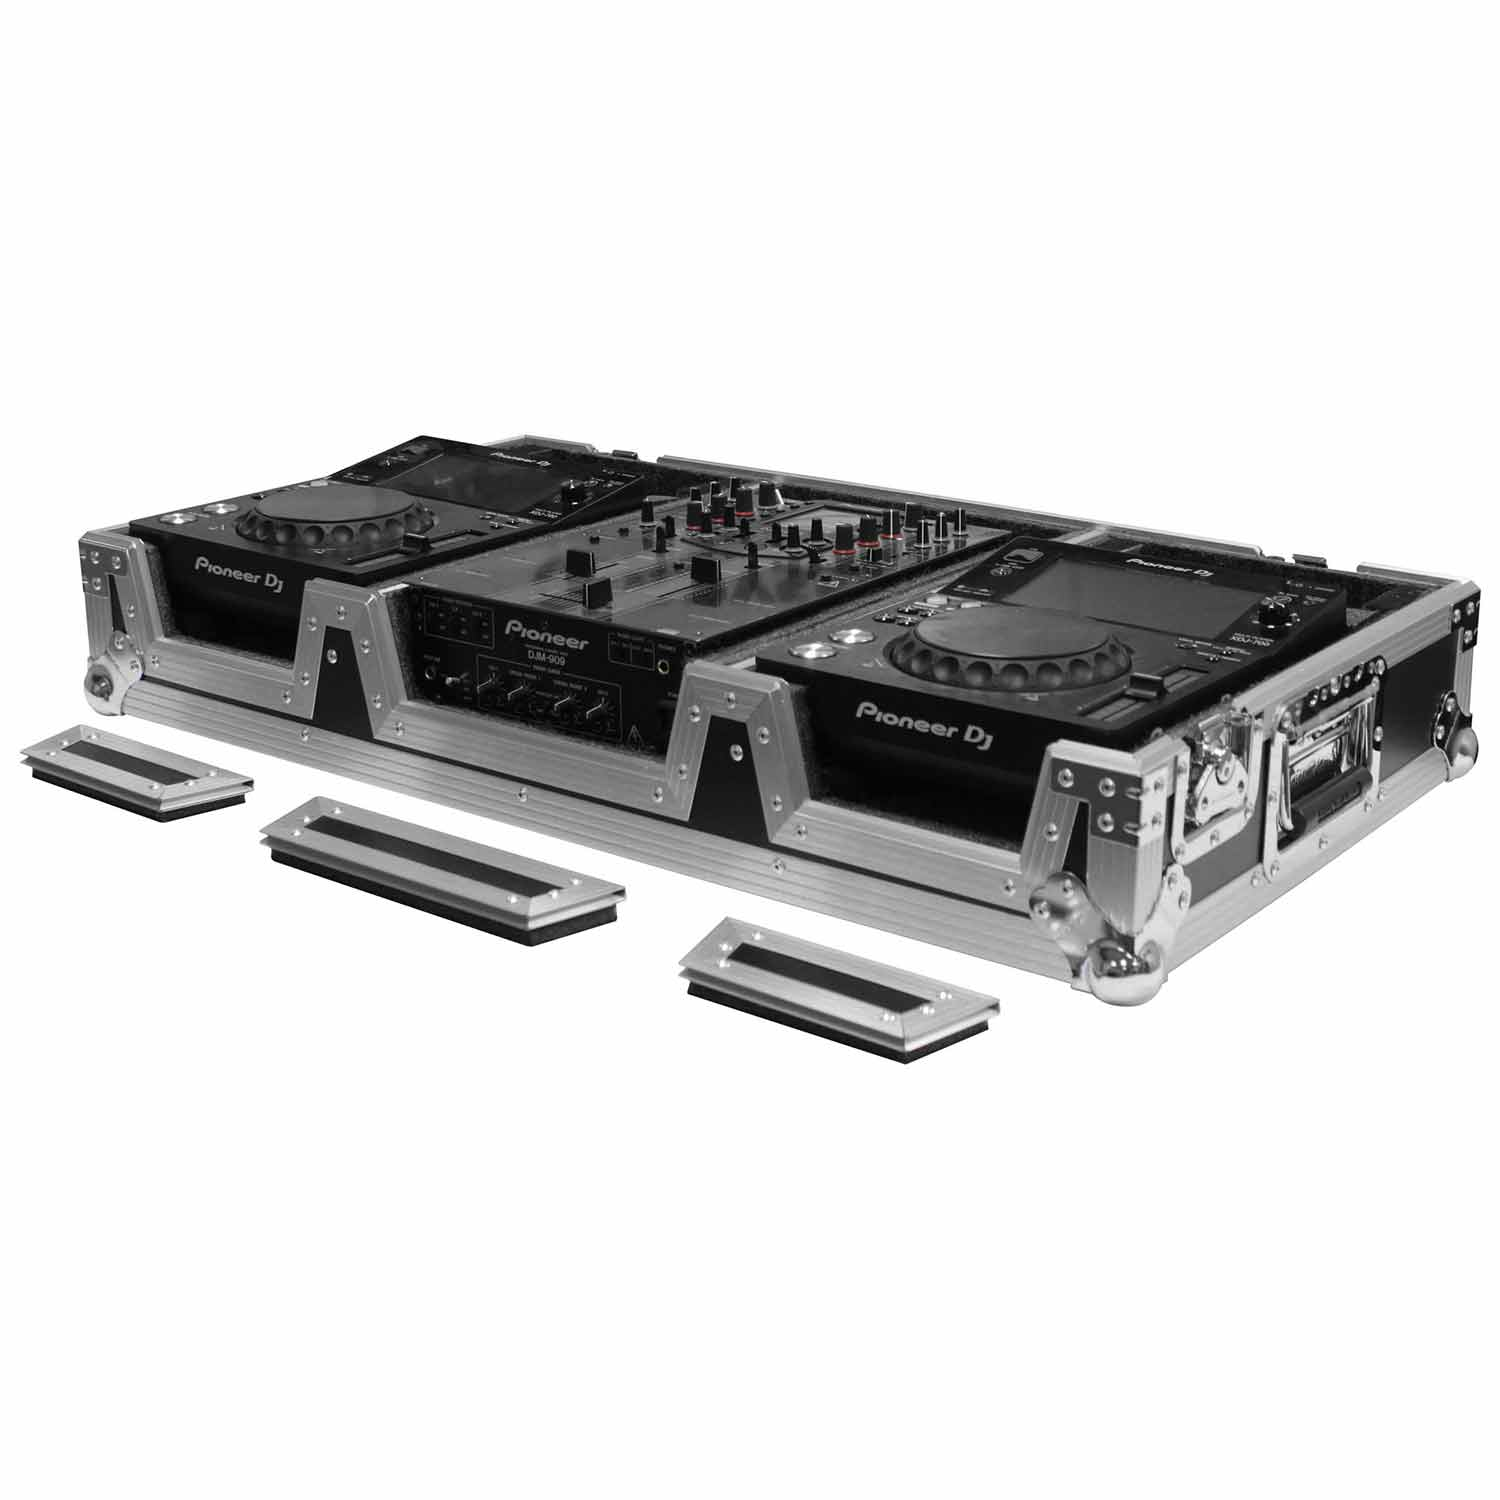 Universal 10 inch mixer and two medium format media players coffin case